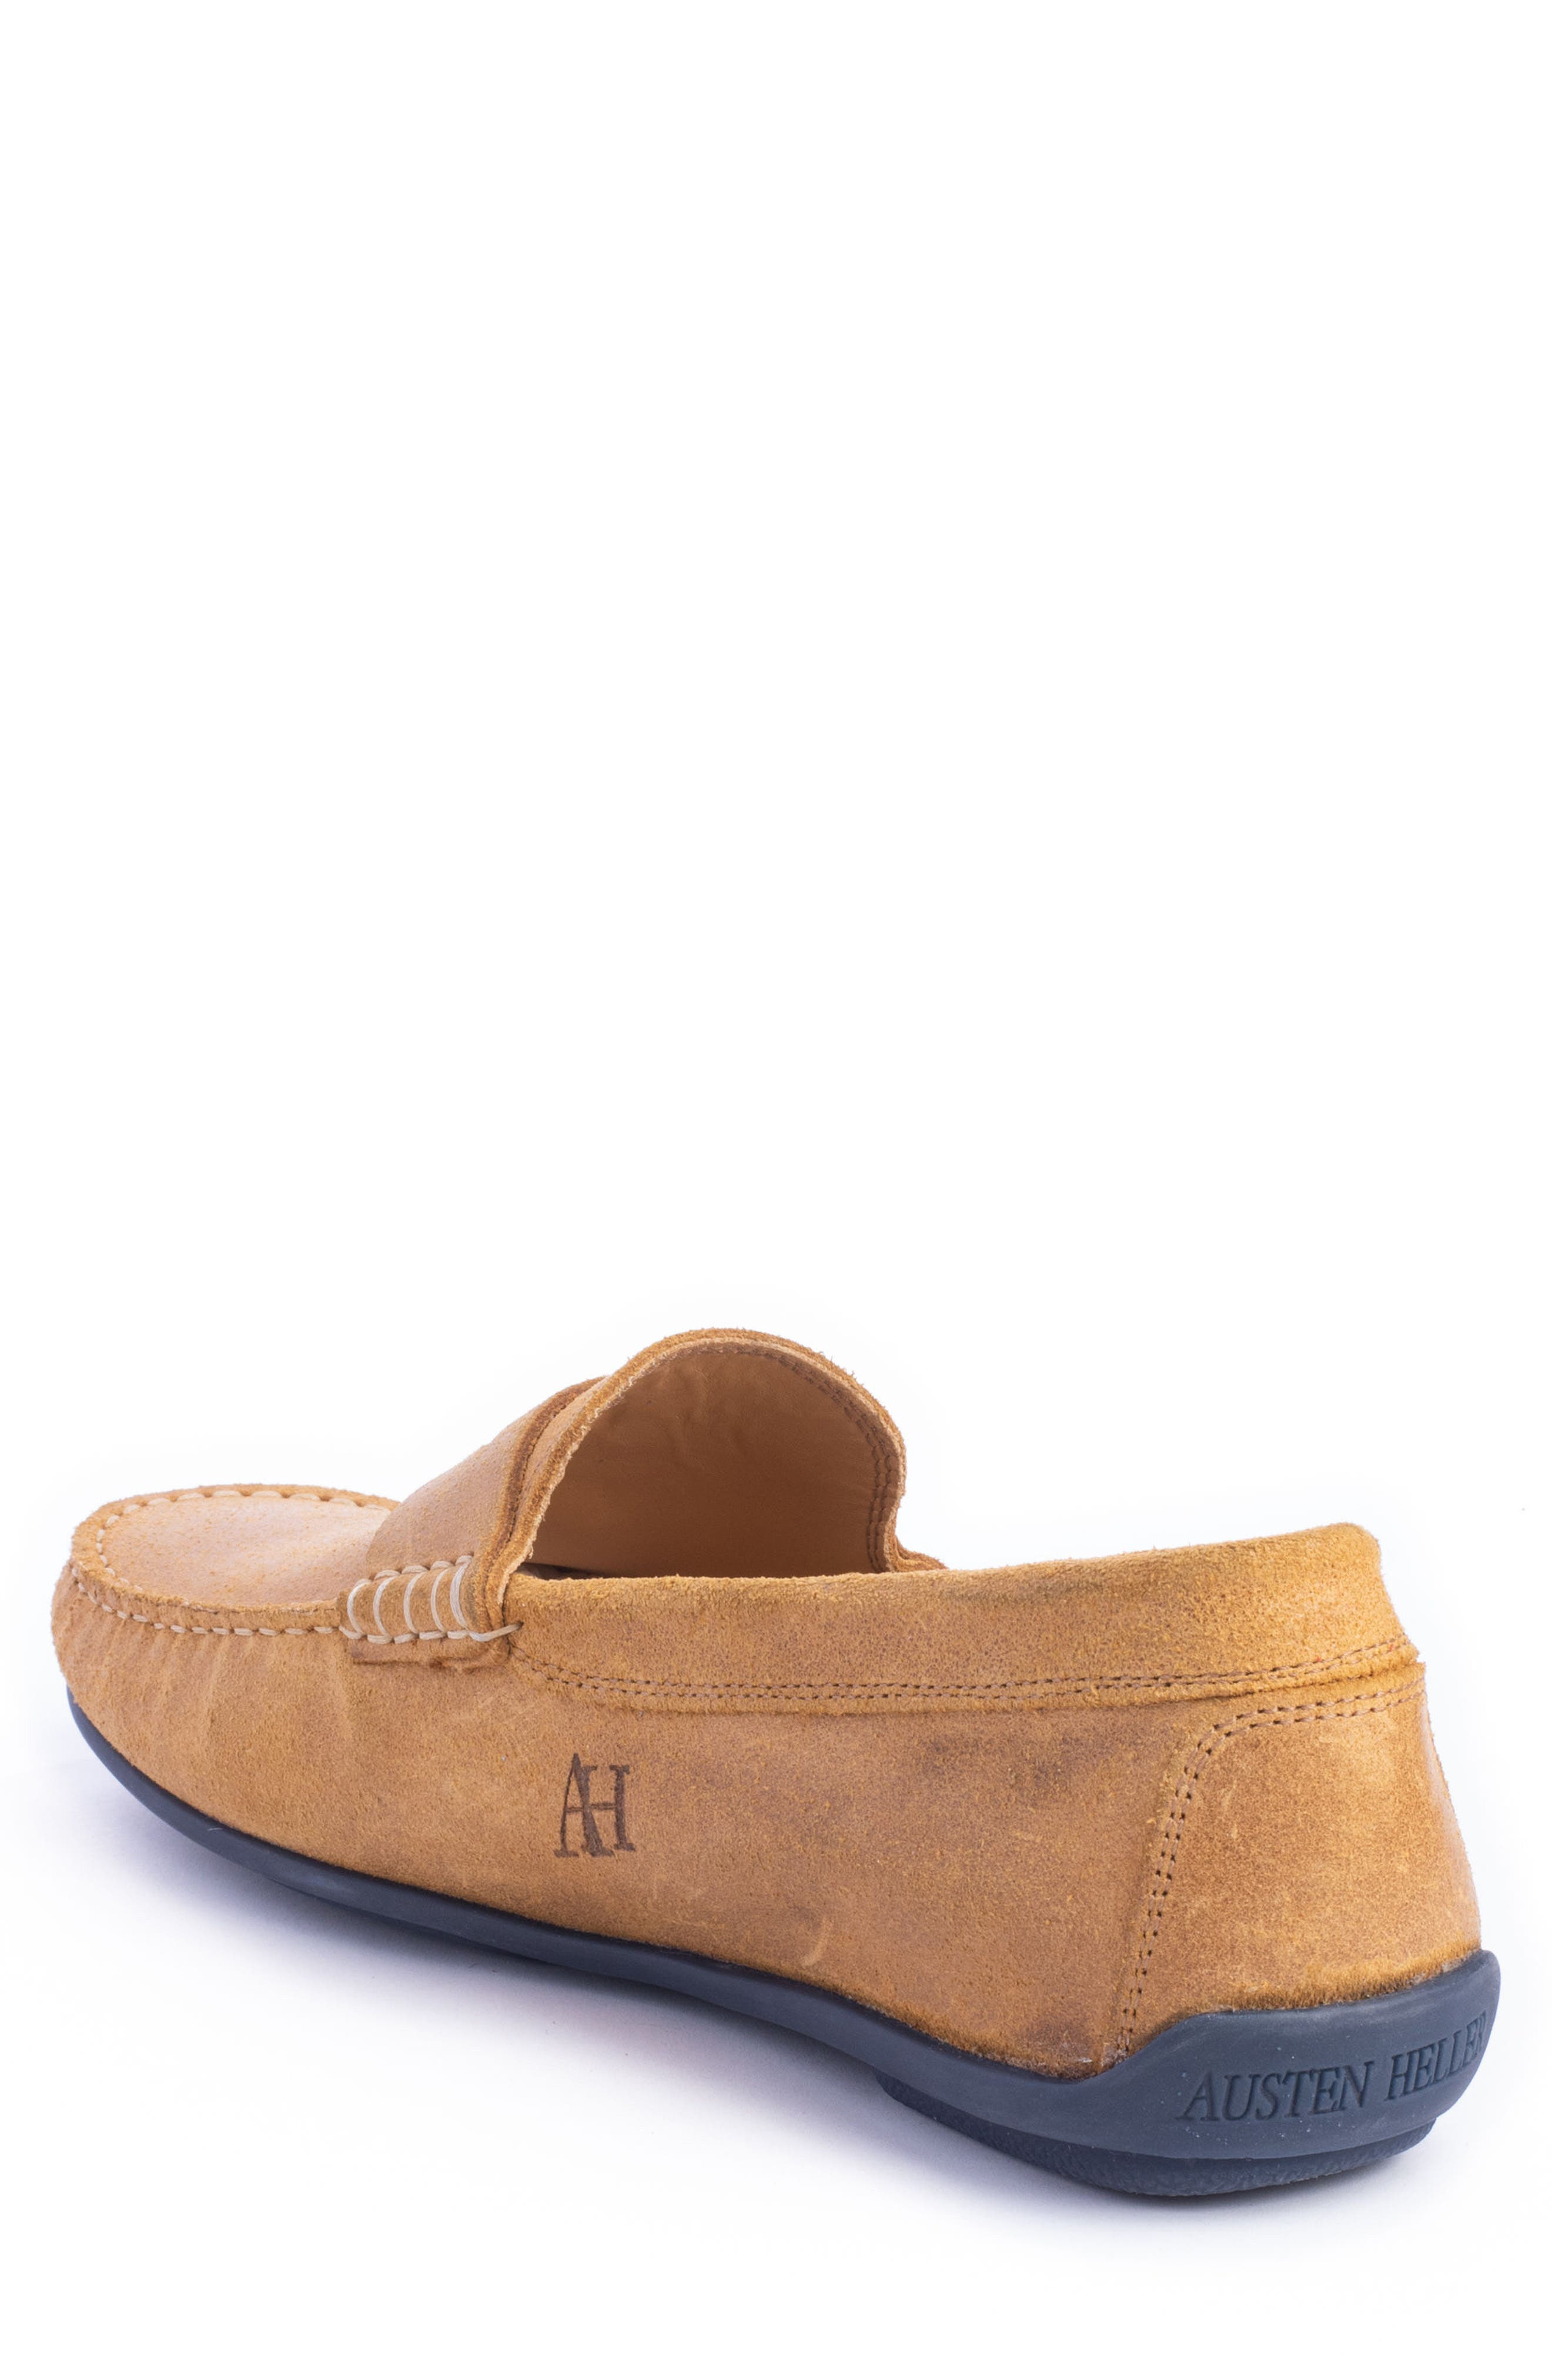 Barretts Penny Loafer,                             Alternate thumbnail 2, color,                             Tan